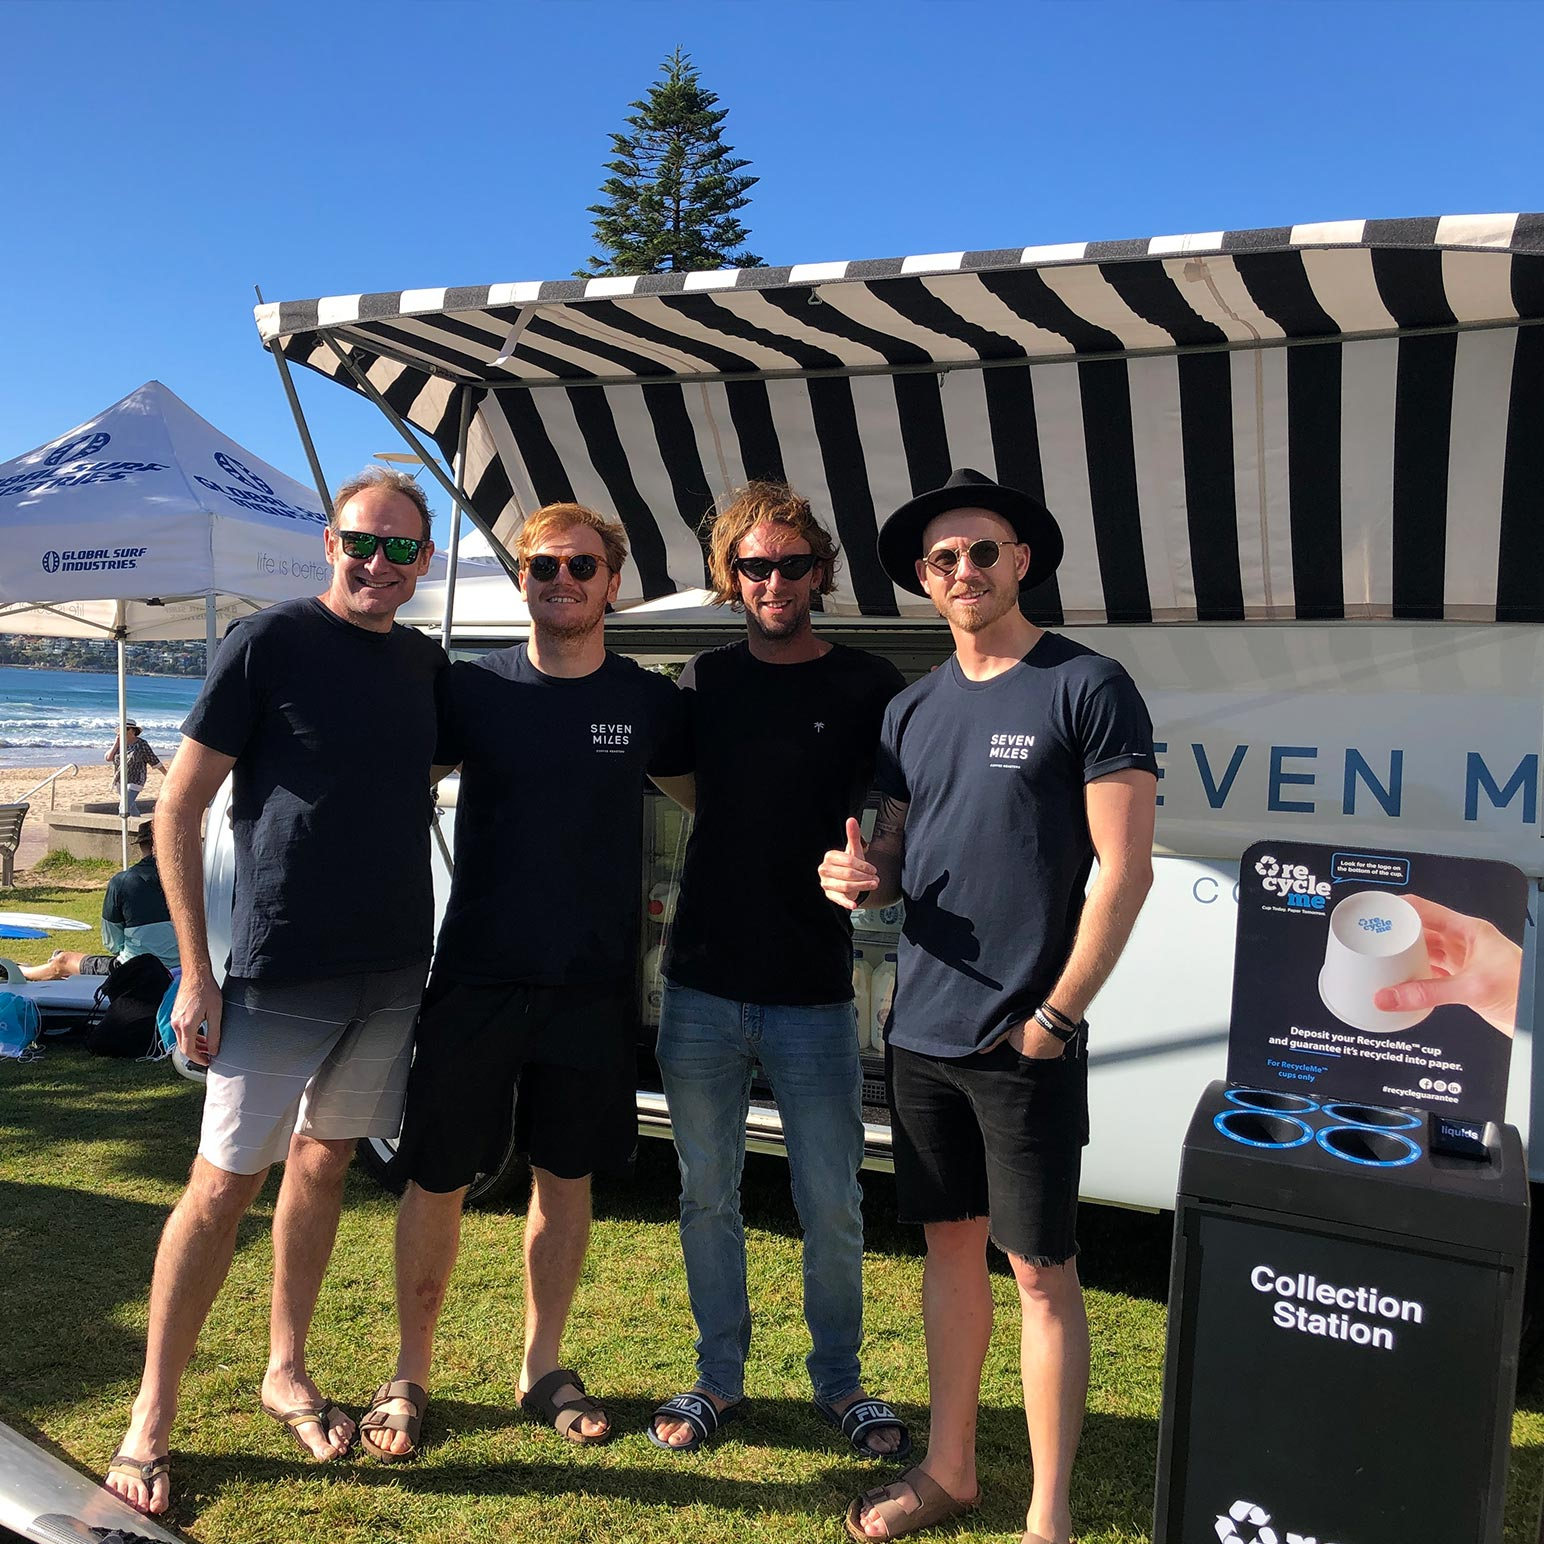 Image of Seven Miles staff supporting Surfaid event with RecycleMe™ cups